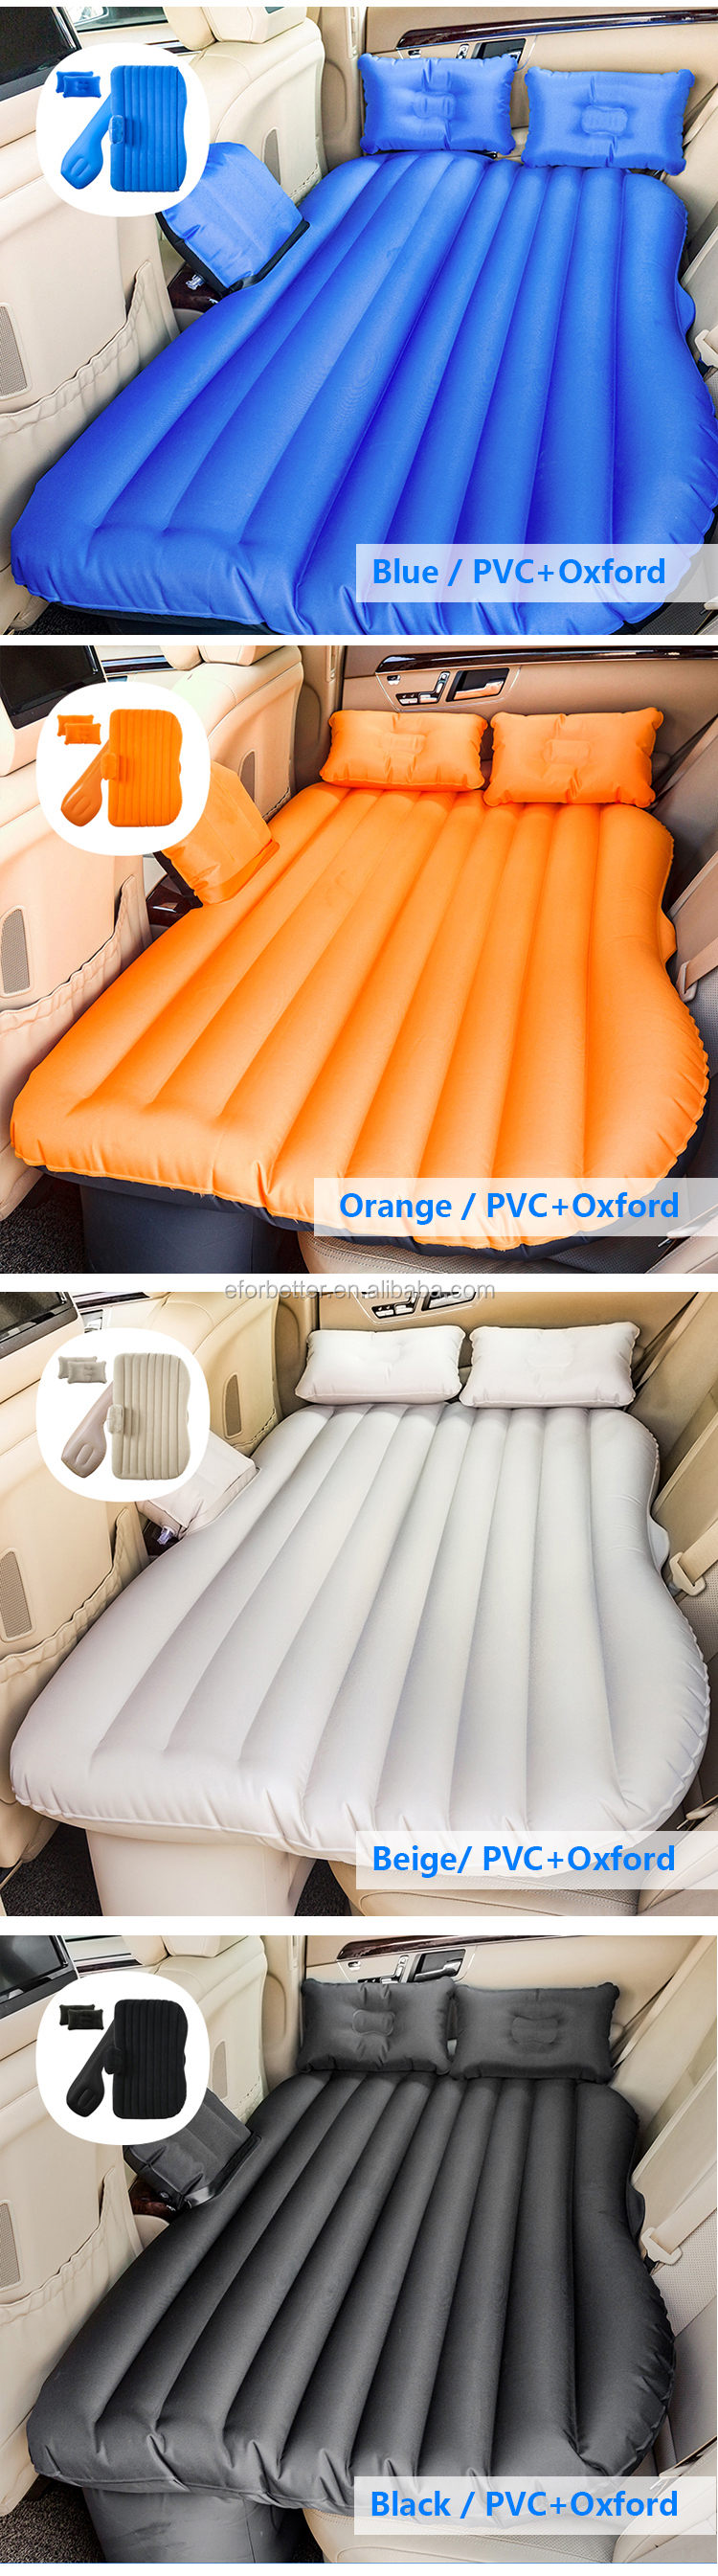 flocking plastic sex ari car bed inflatable air bed sofa kingcamp car back seat inflatable mattress